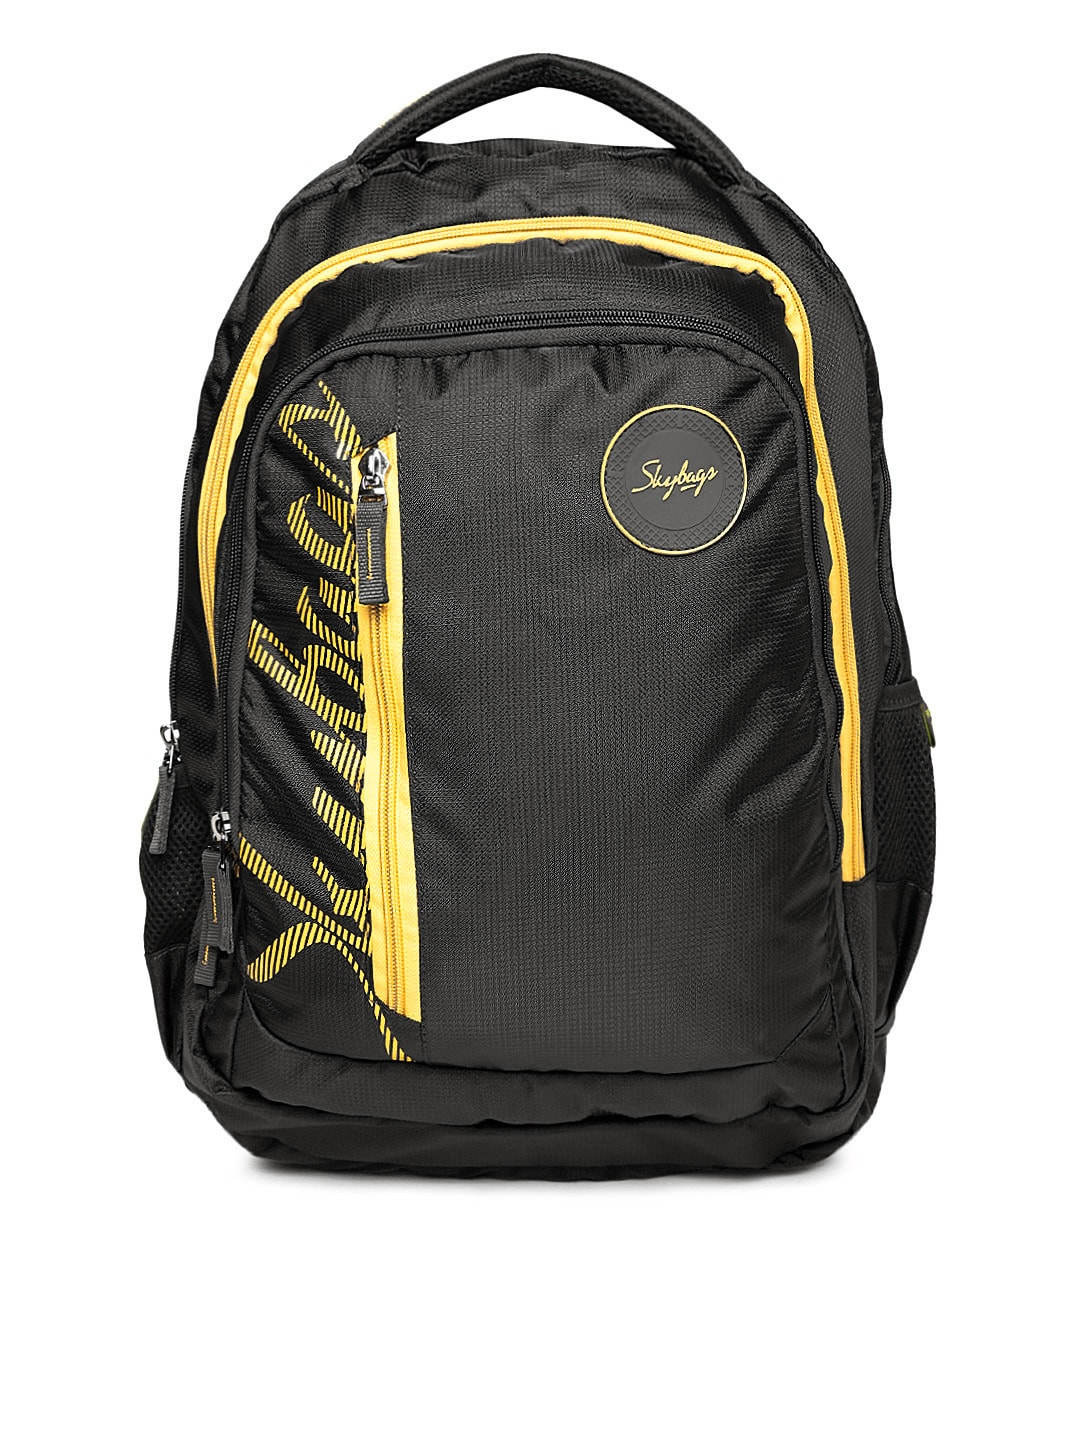 Skybags - Buy Skybags Online at Best Price in India   Myntra 6af690711e